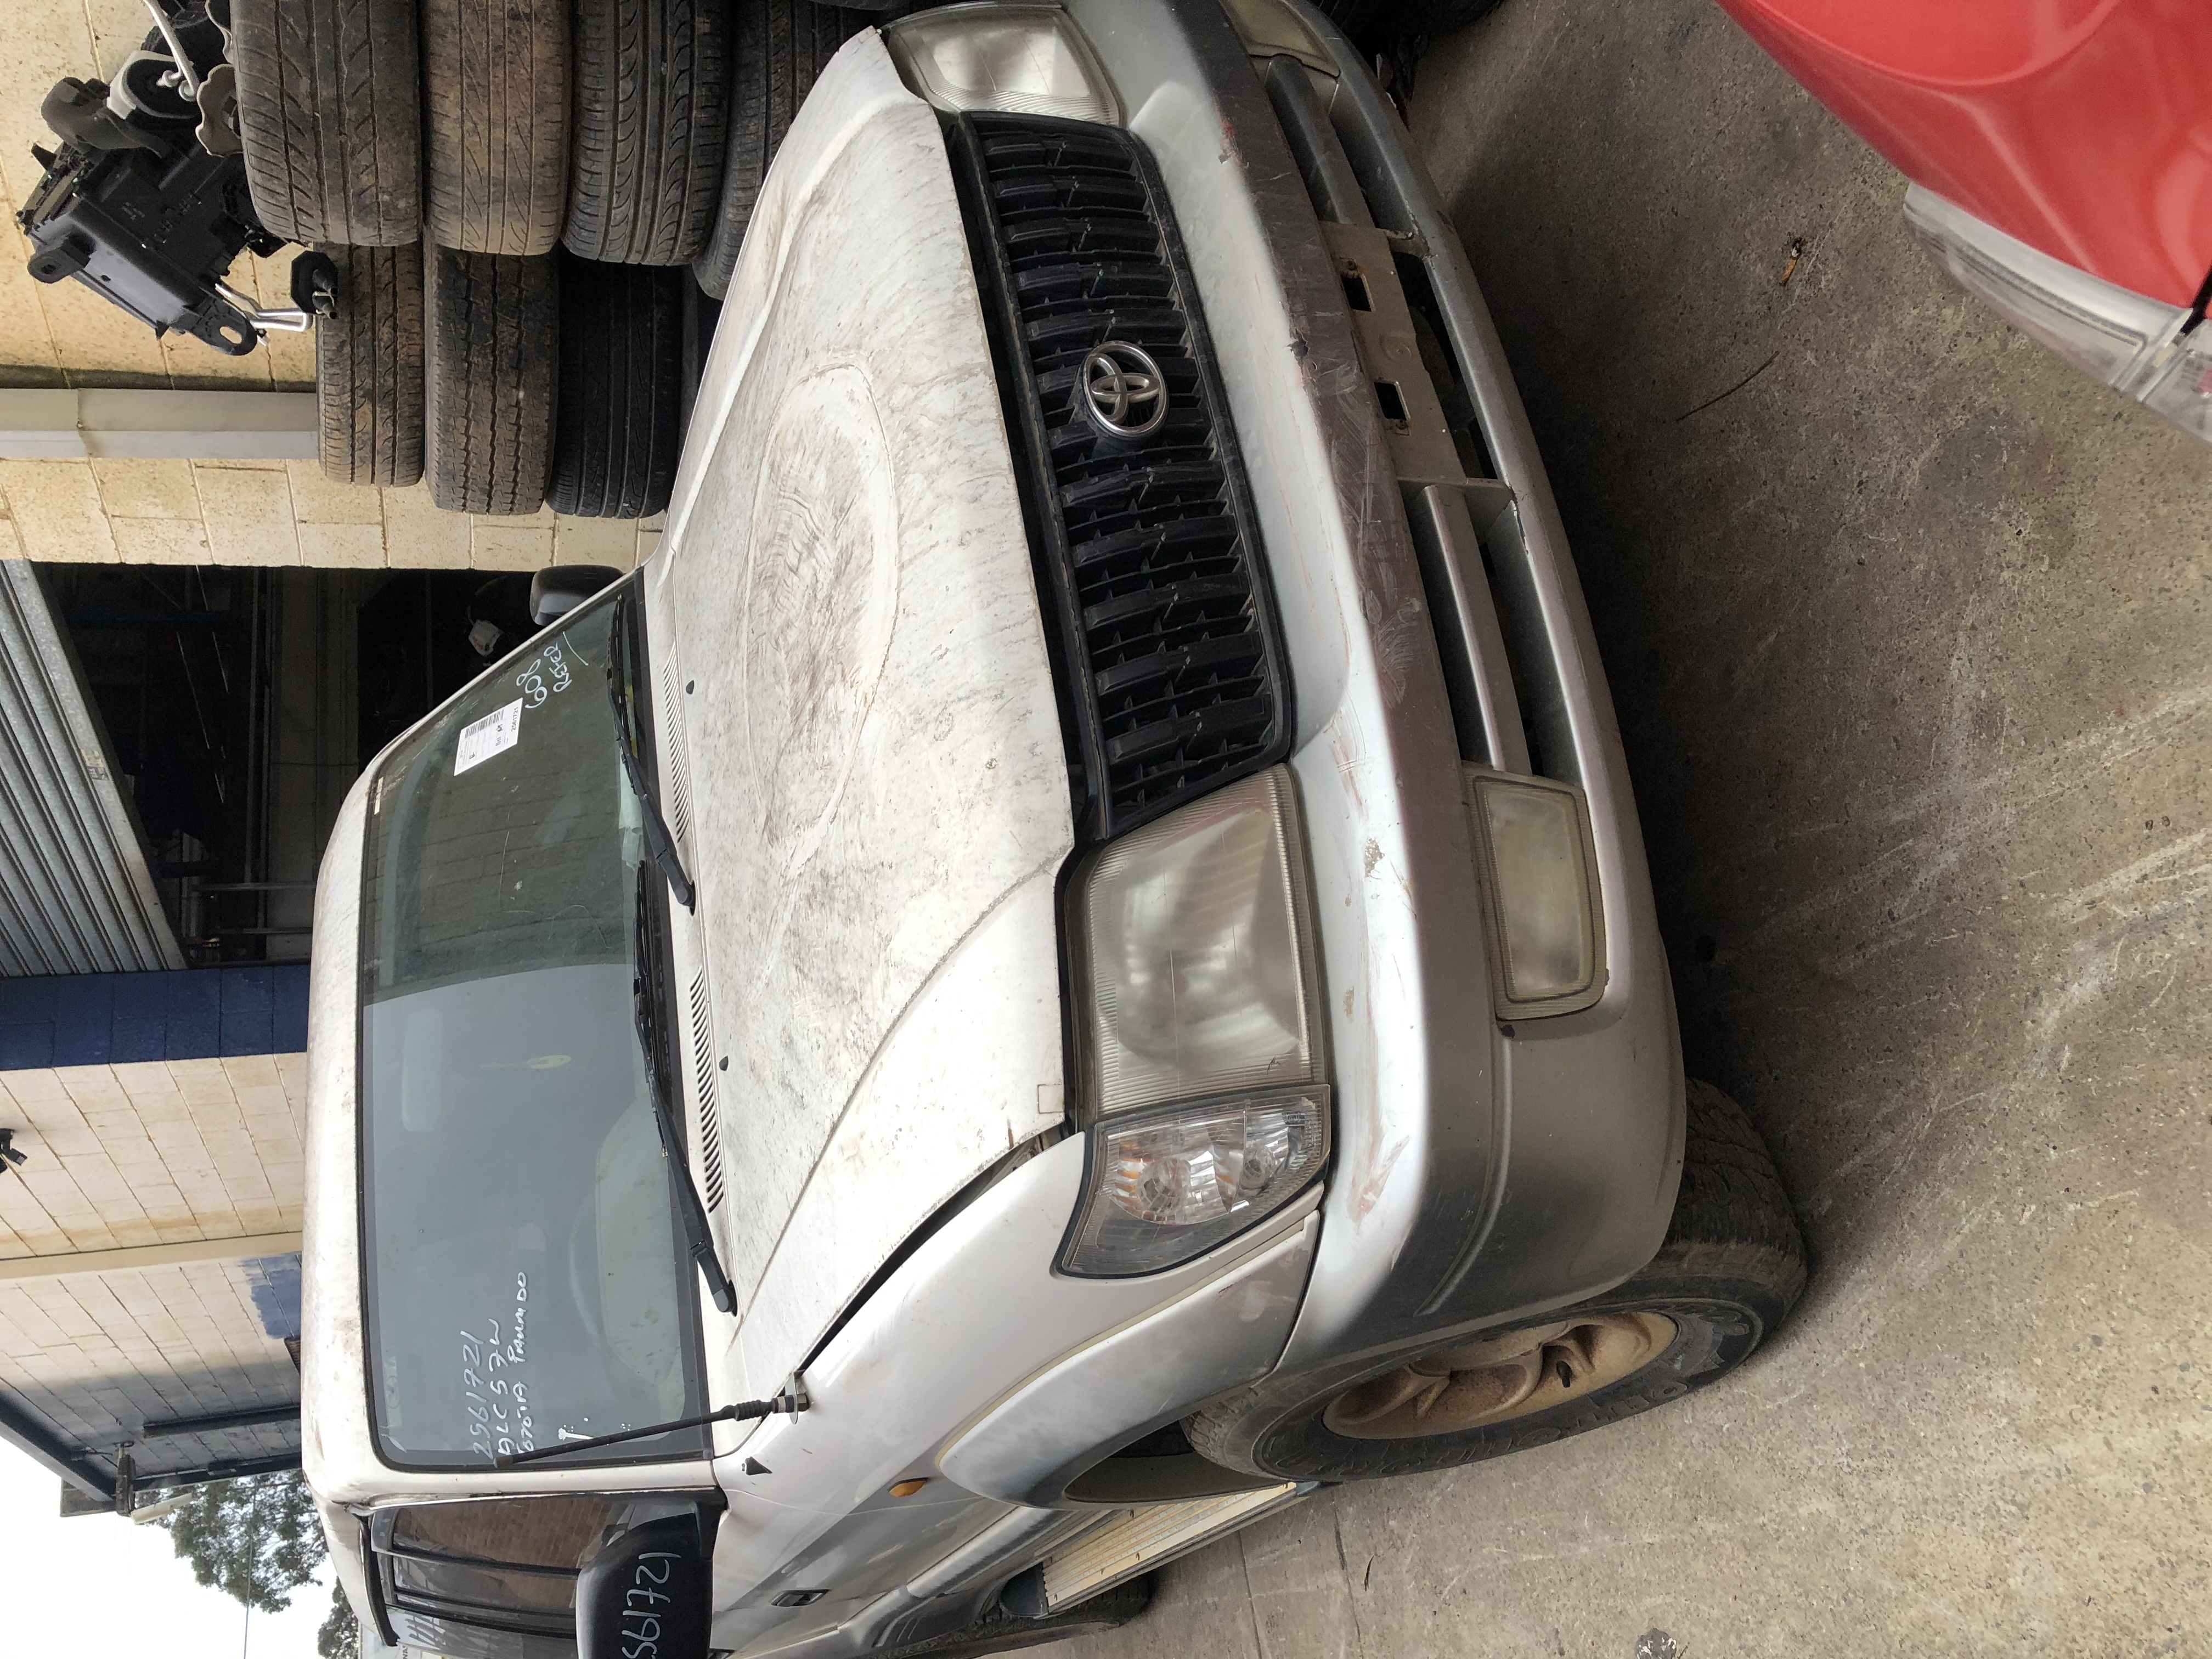 toyota prado 2002 WRECKING All parts available Kingswood Autos WRECKERS 02 4761 9998